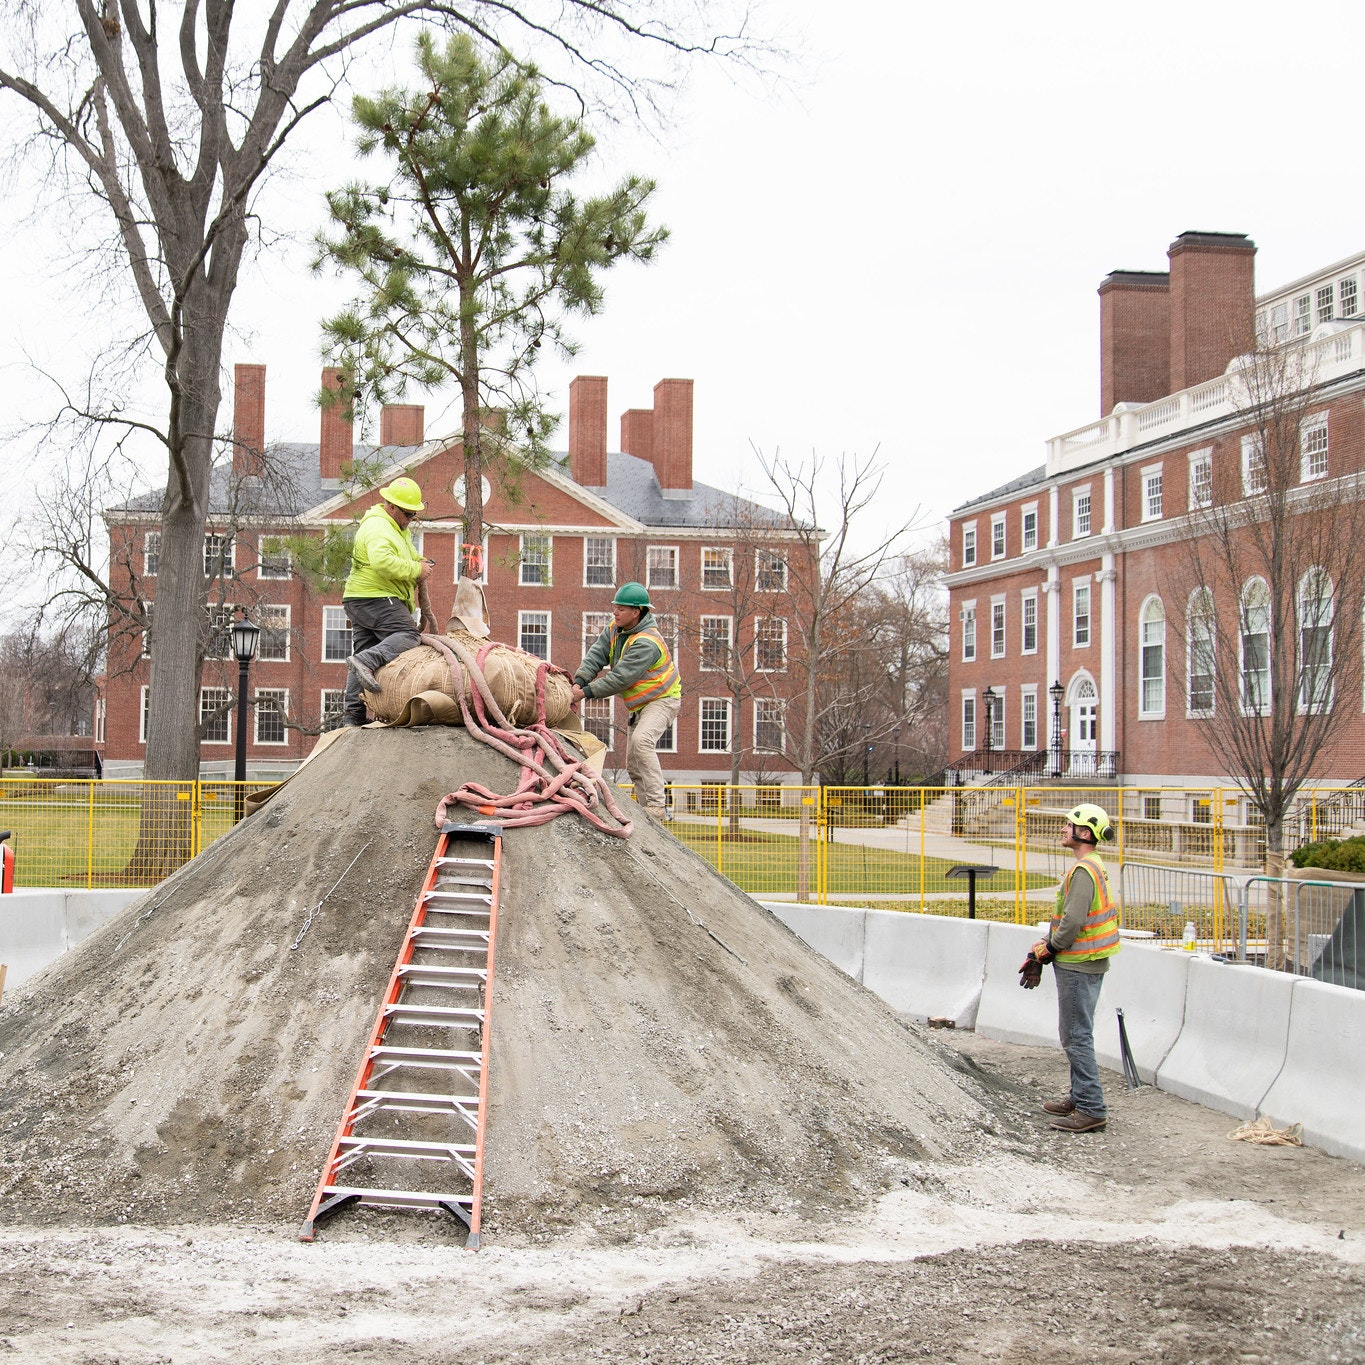 Three construction workers working on mound of sand